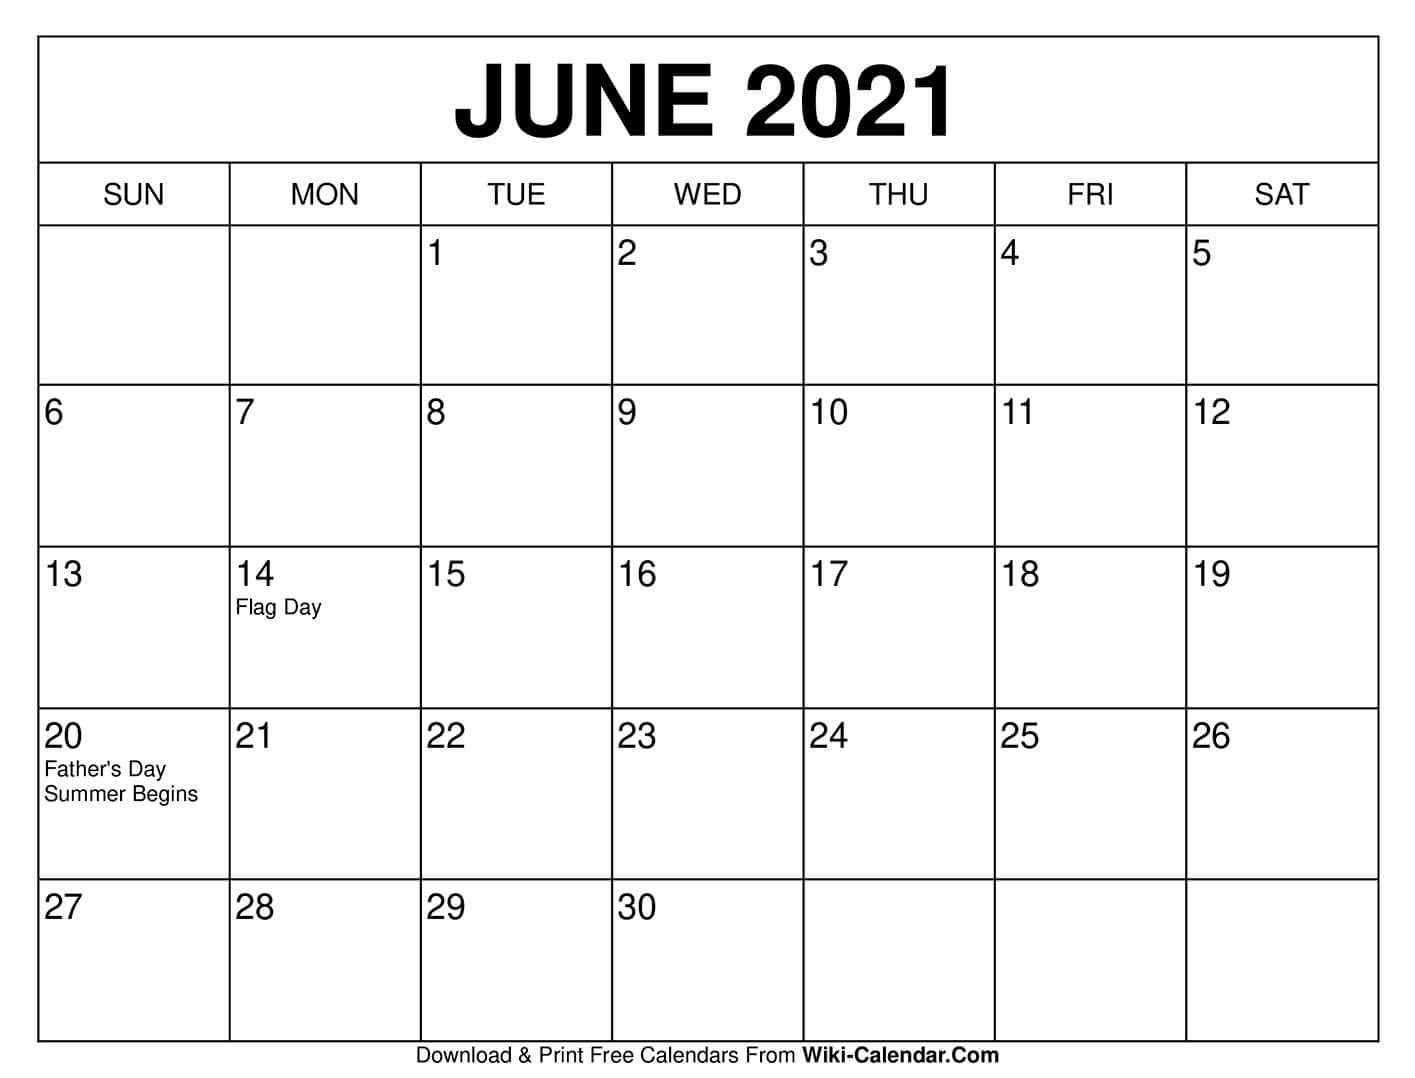 June 2021 Calendar In 2020 | Calendar Printables, Print with regard to 2021 Fill-In Calendar